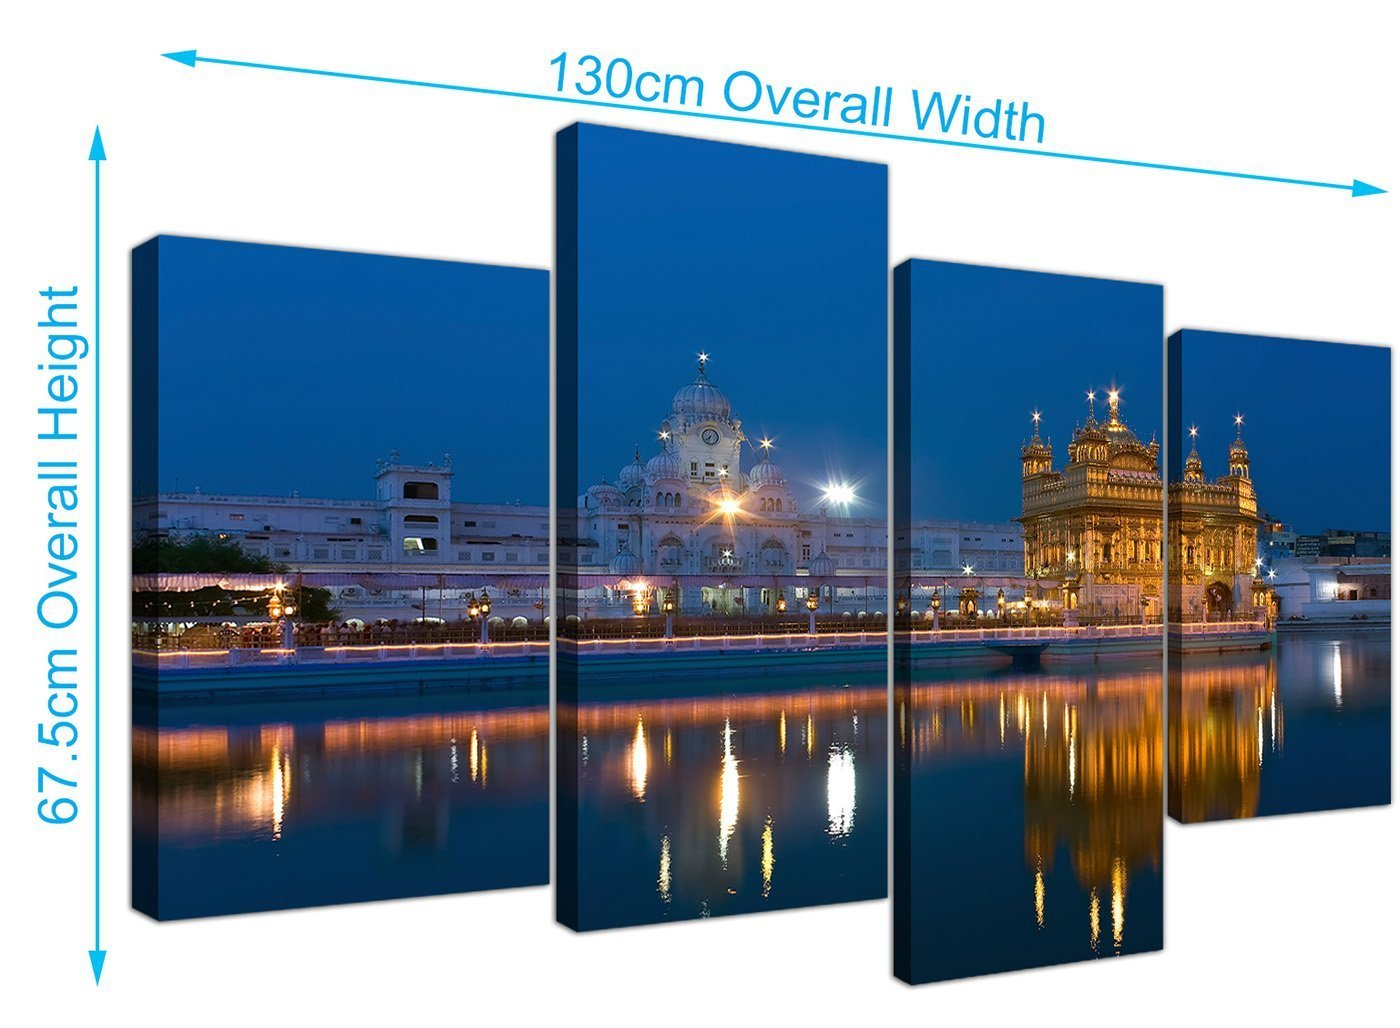 Large sikh canvas wall art pictures of the golden temple at amritsar set of 4 multi panel artwork modern split canvases xl 130cm wide